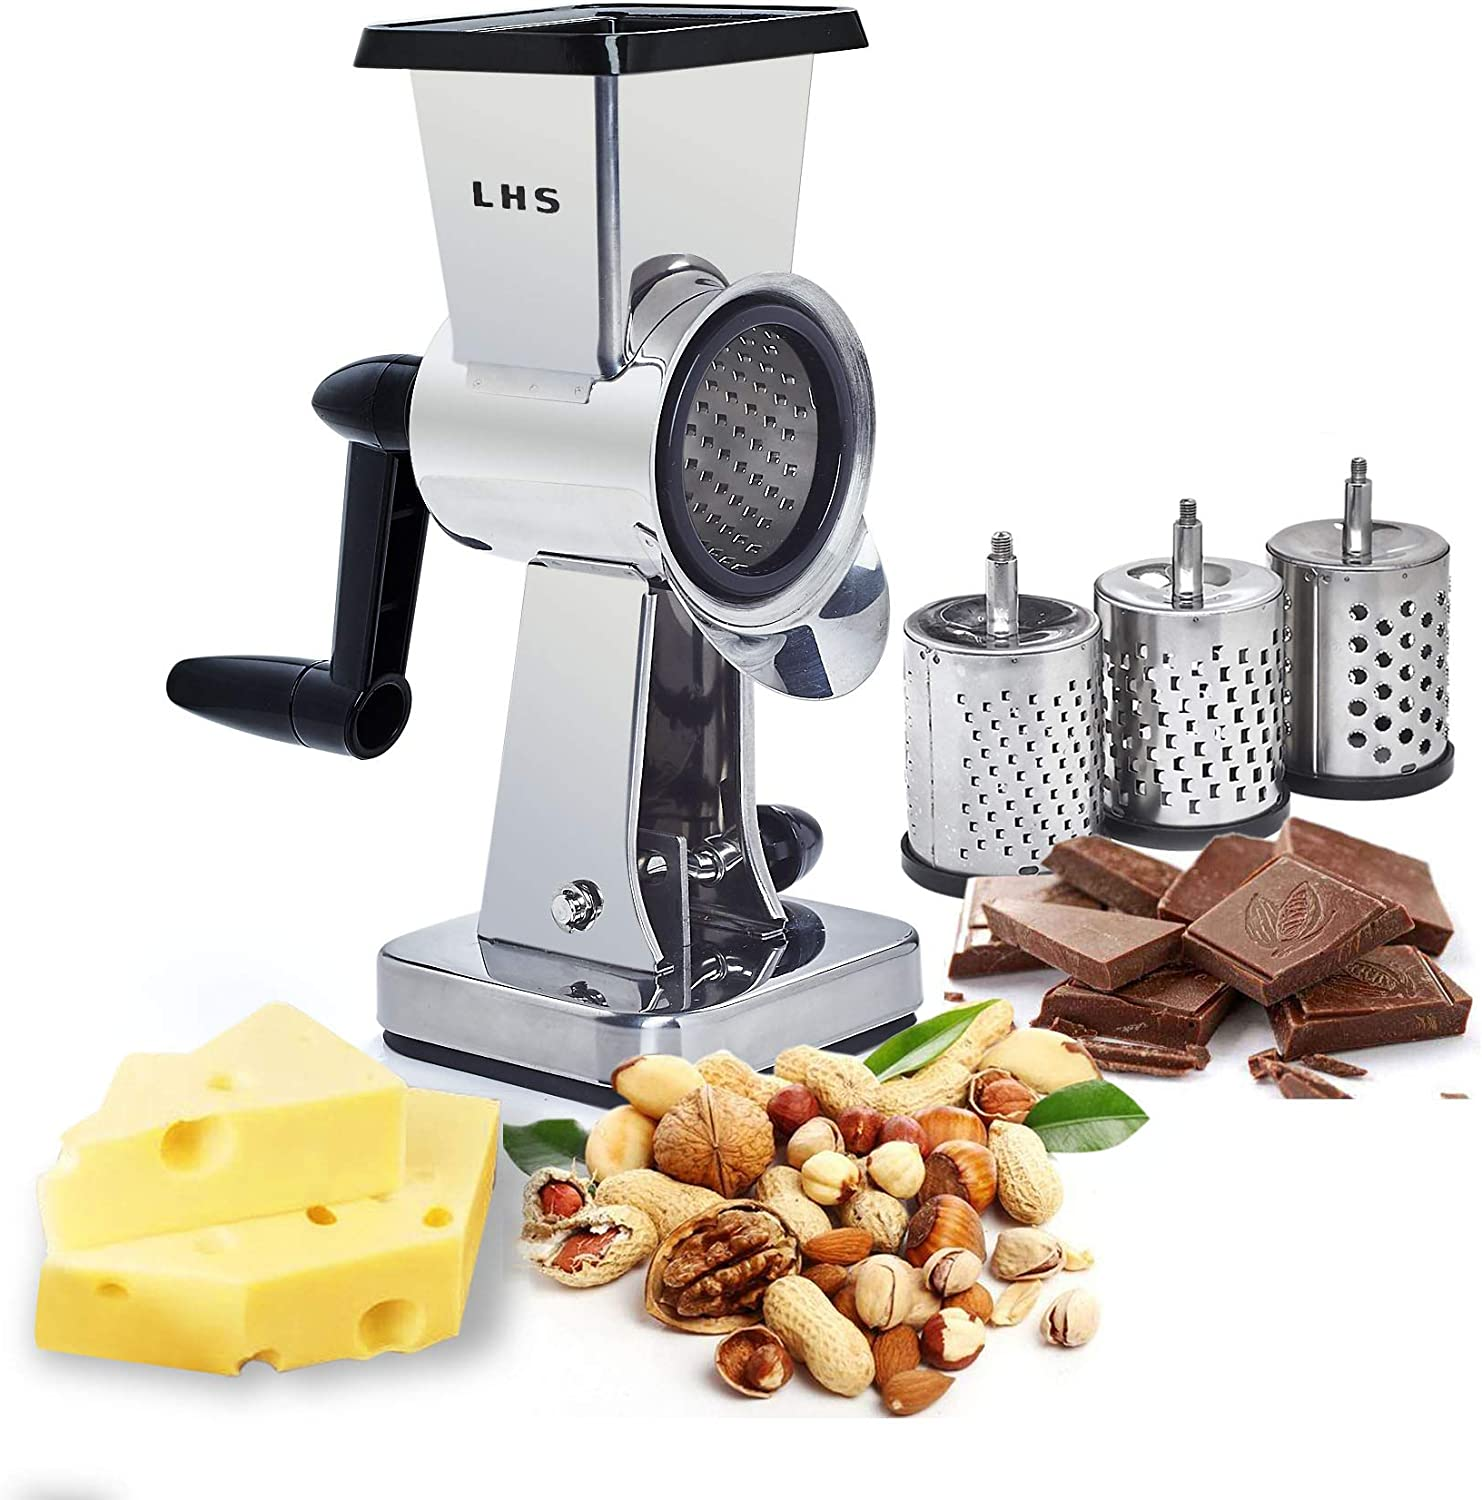 Rotary Cheese Grater Stainless Steel Body Chocolate Drum Shredder Cutter Nut Grinder with 3 Interchangeable Sharp Drums 7.5 Inch High